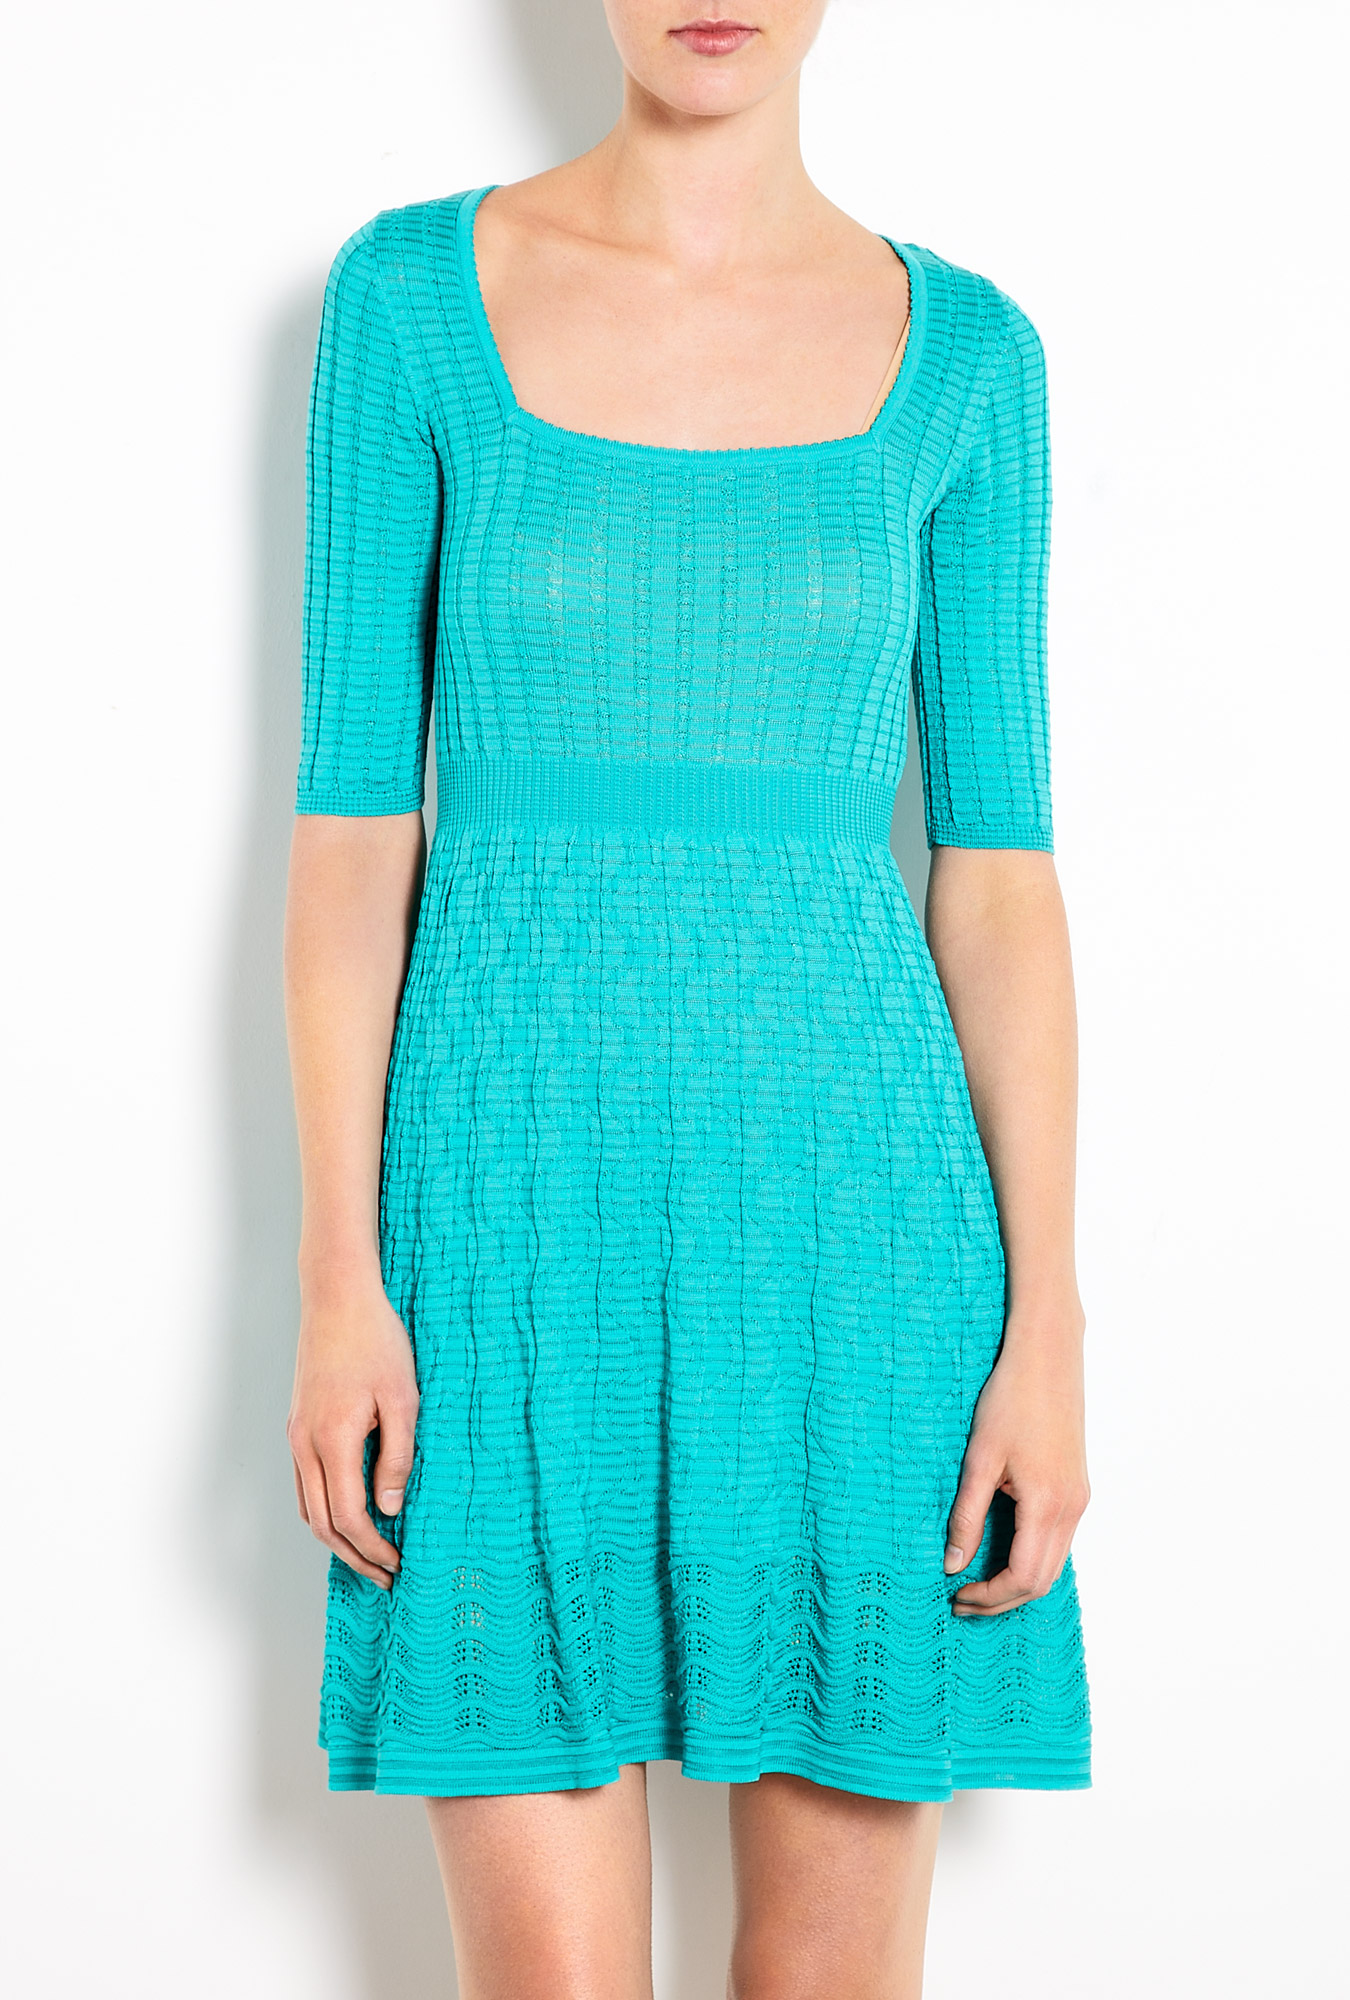 M Missoni Square Neck Wave Knit Dress In Blue Turquoise